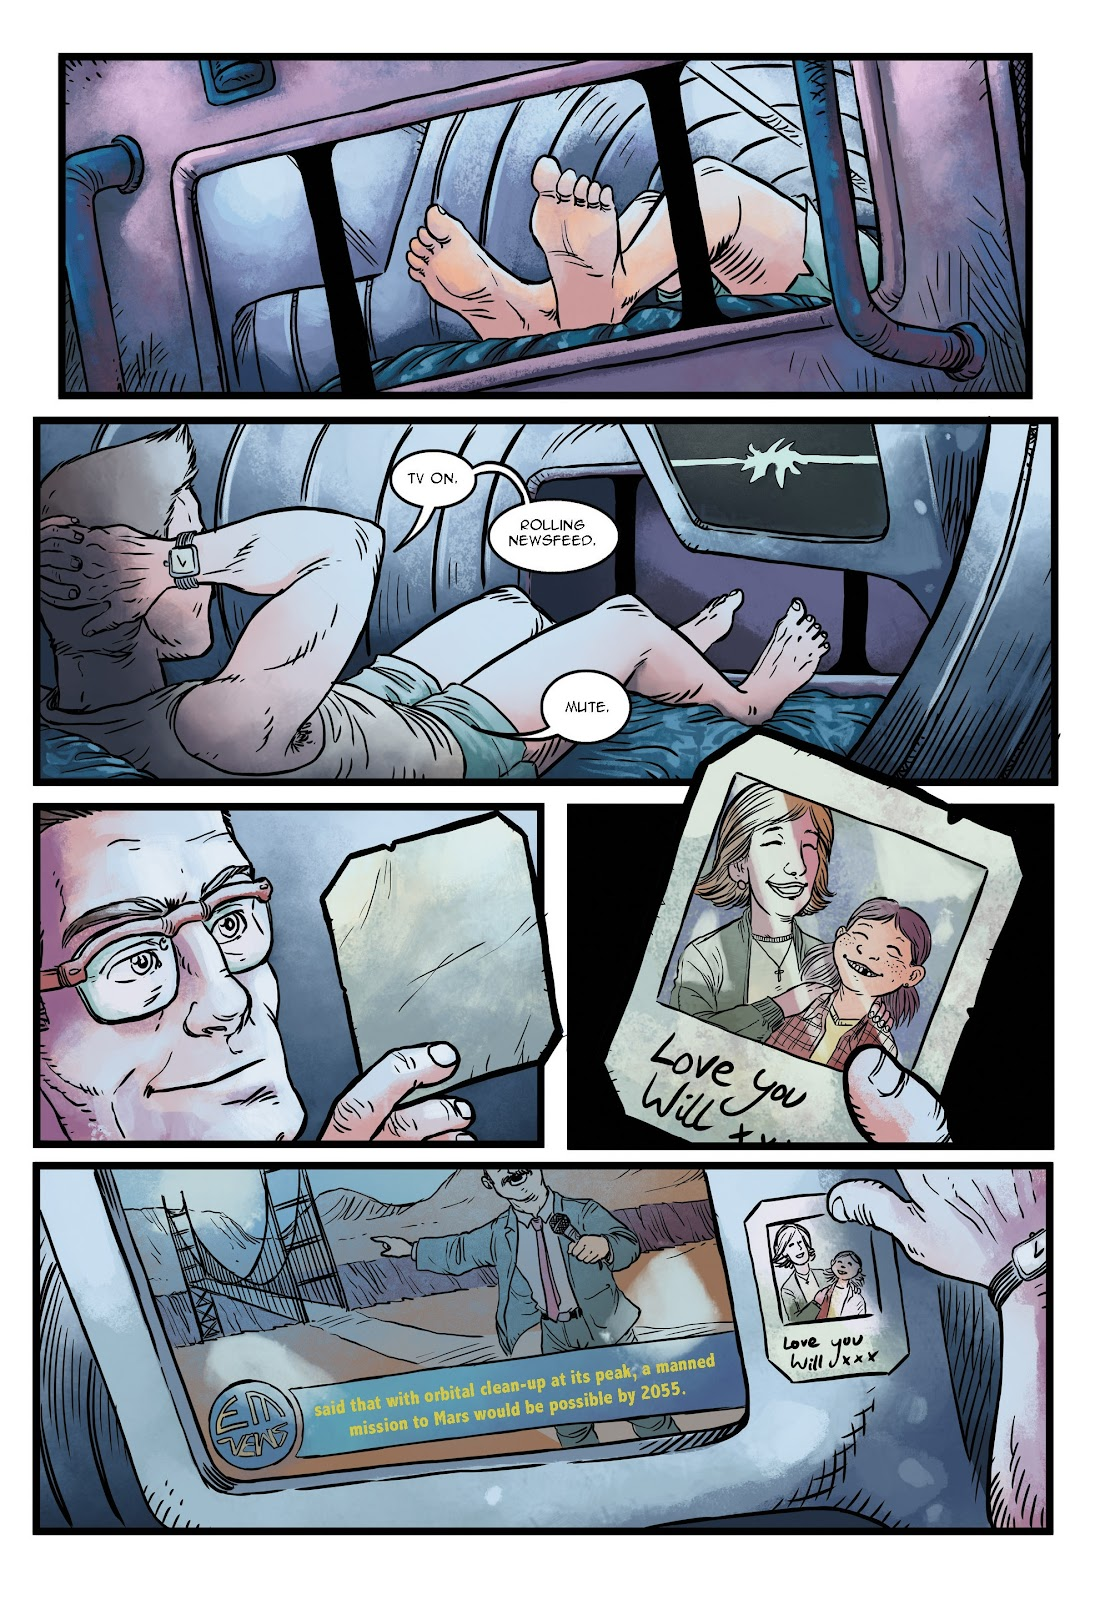 Read online Impossible comic -  Issue # TPB - 16